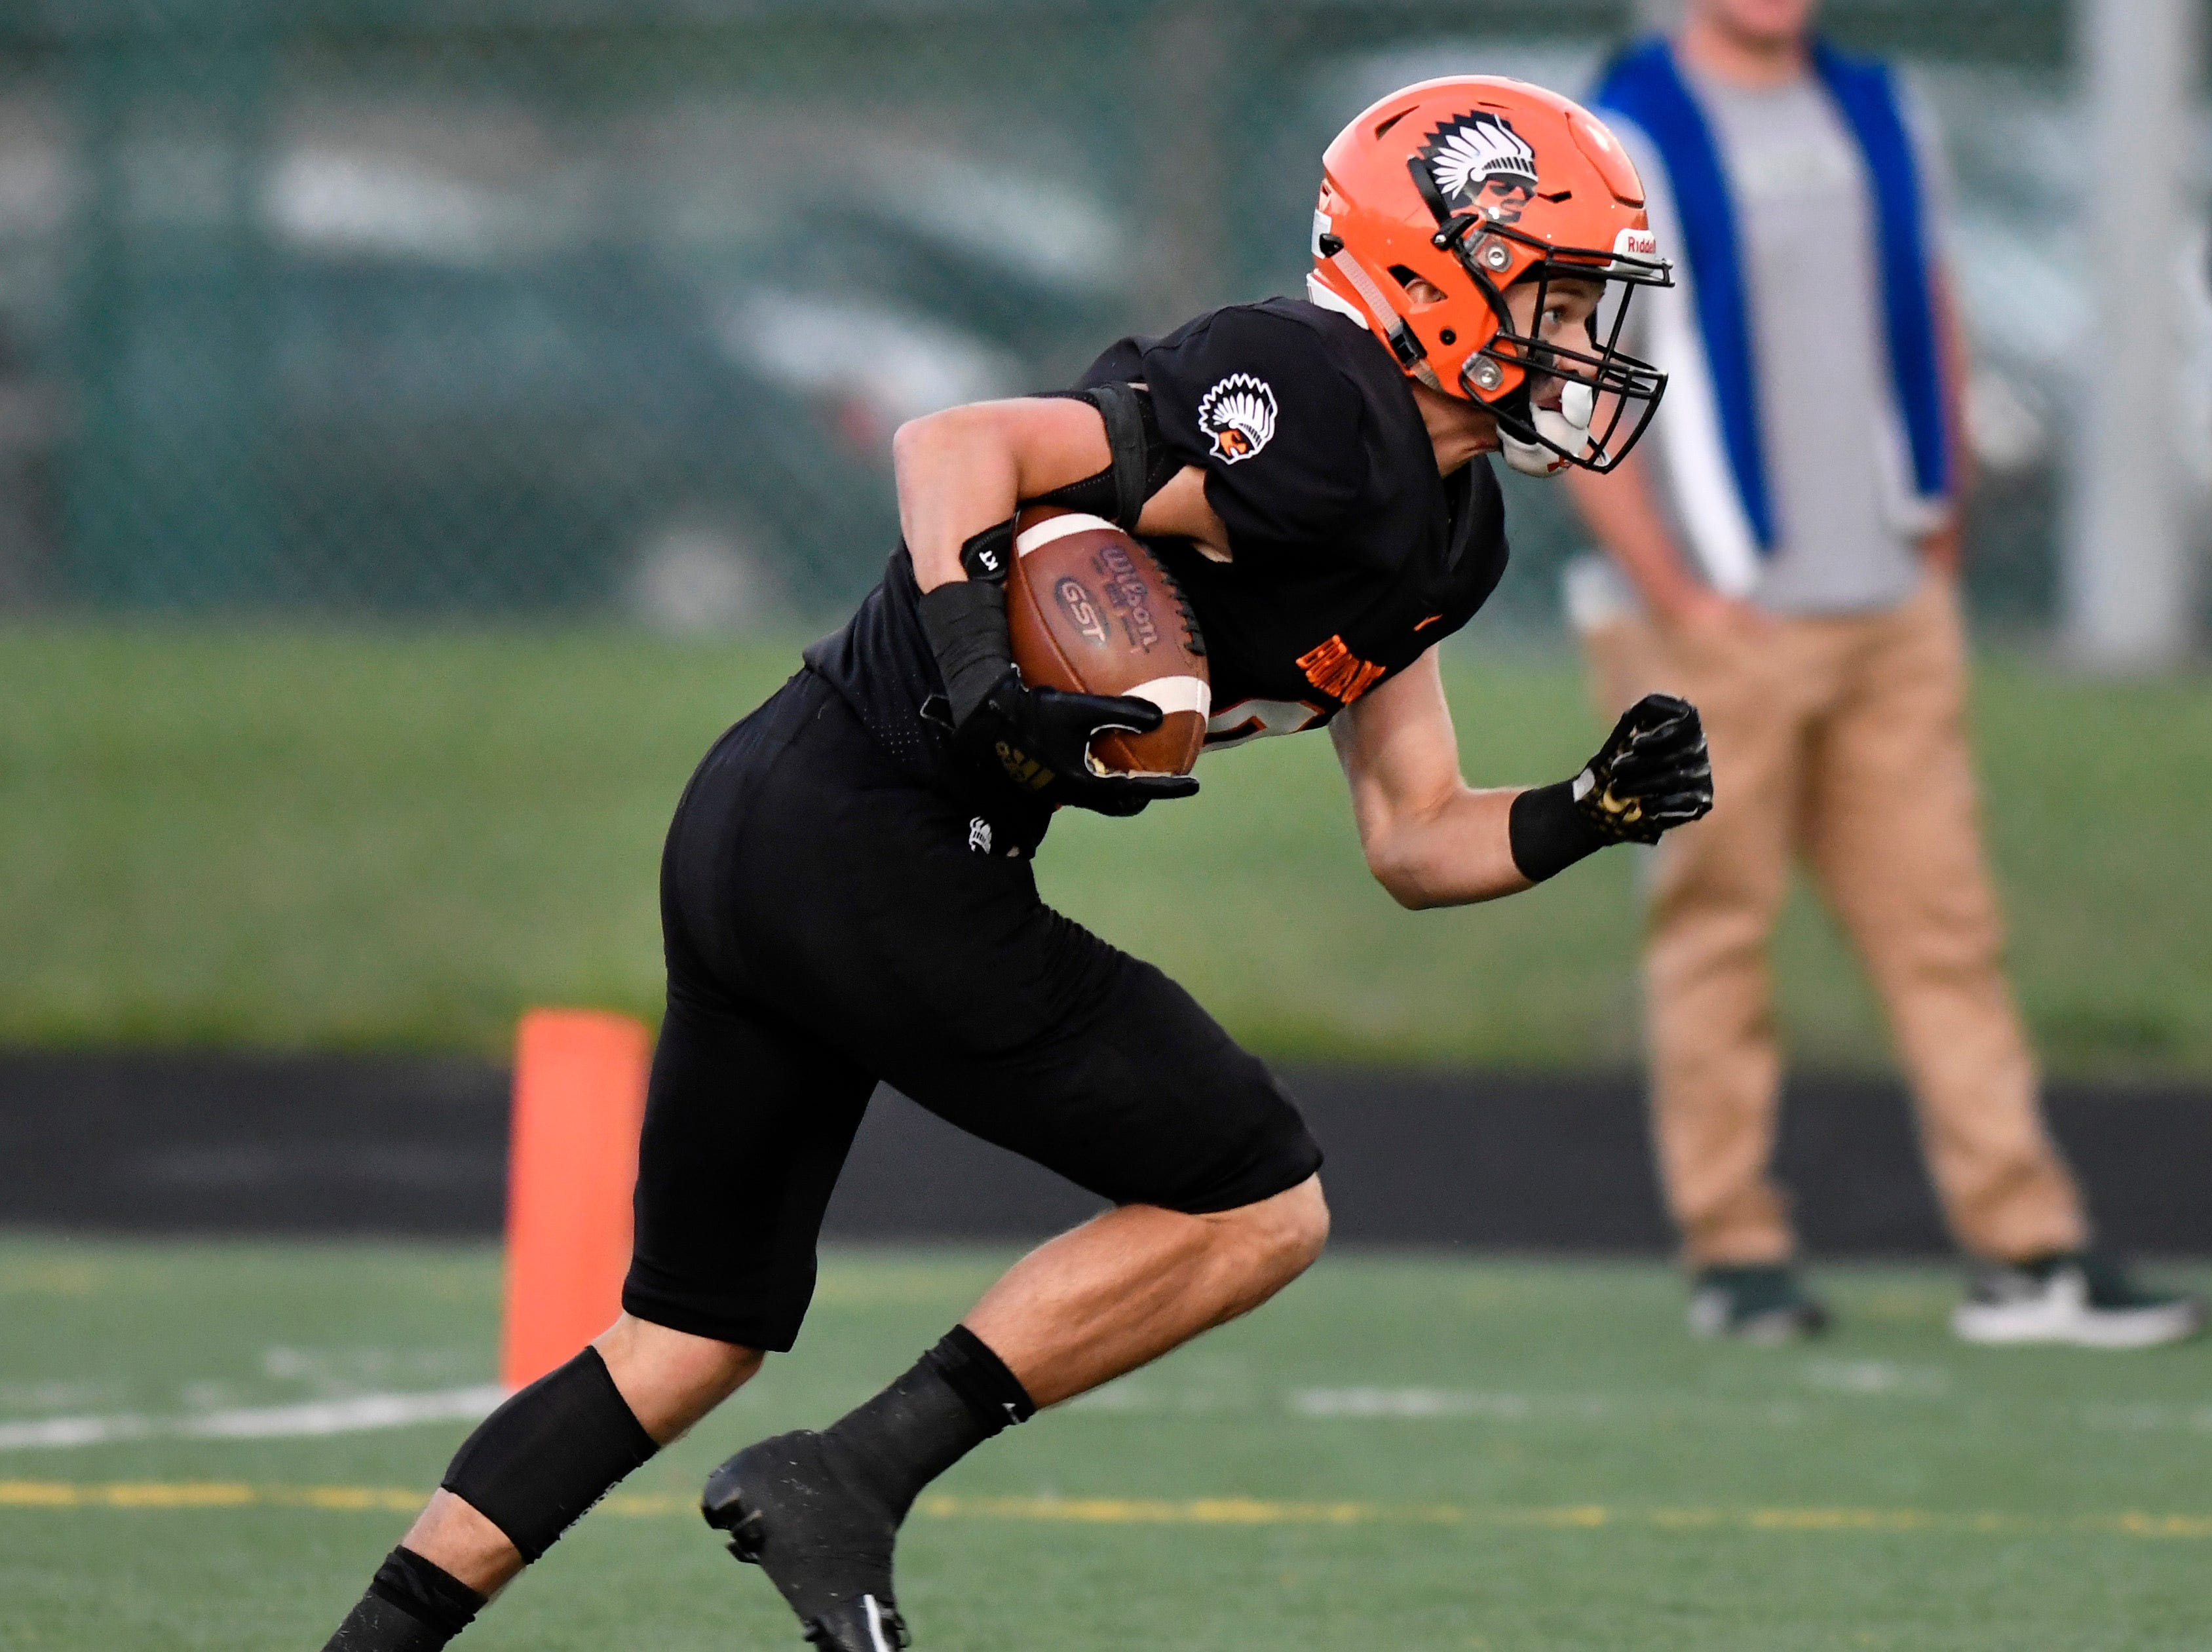 Birmingham Brother Rice kick returner Colin Gardner (9) returns a kickoff against Detroit Catholic Central in the first quarter, Saturday, Sept. 22, 2018 at Hurley Field in Berkley, Mich.  Catholic Central defeated Brother Rice, 21-0.  (Jose Juarez/Hometown Life)